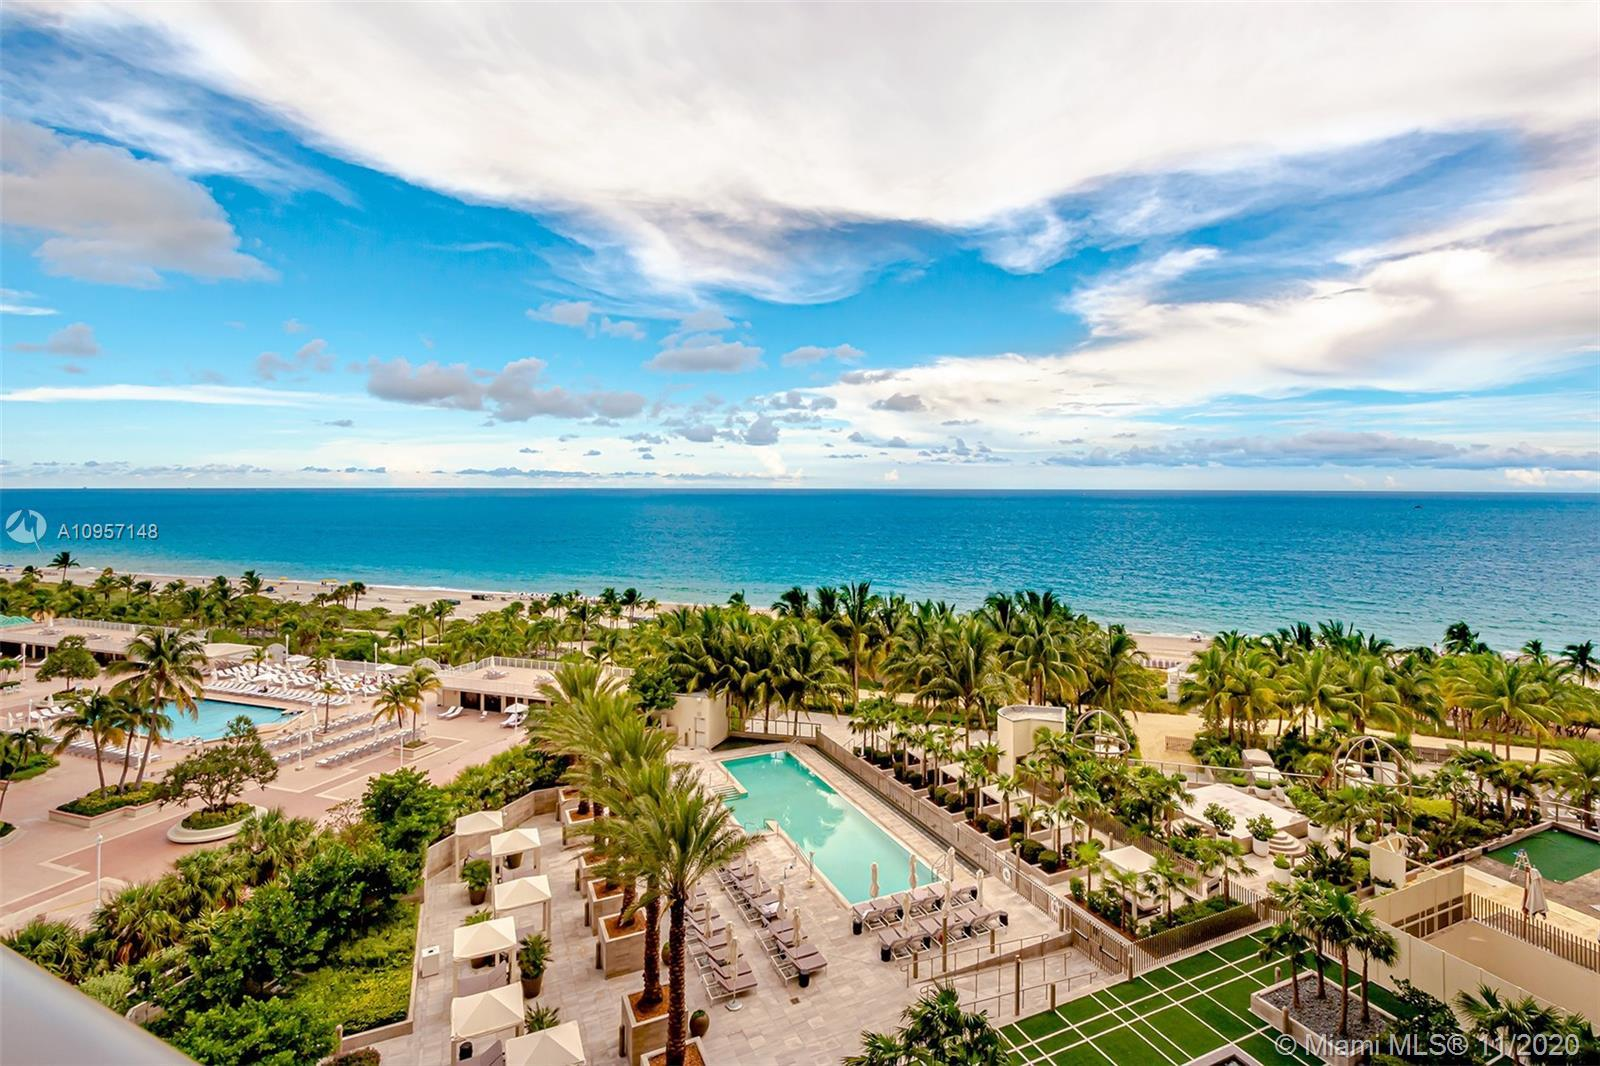 St. Regis Bal Harbour beach Resort, Turnkey condo hotel with direct ocean views from 2 private, over